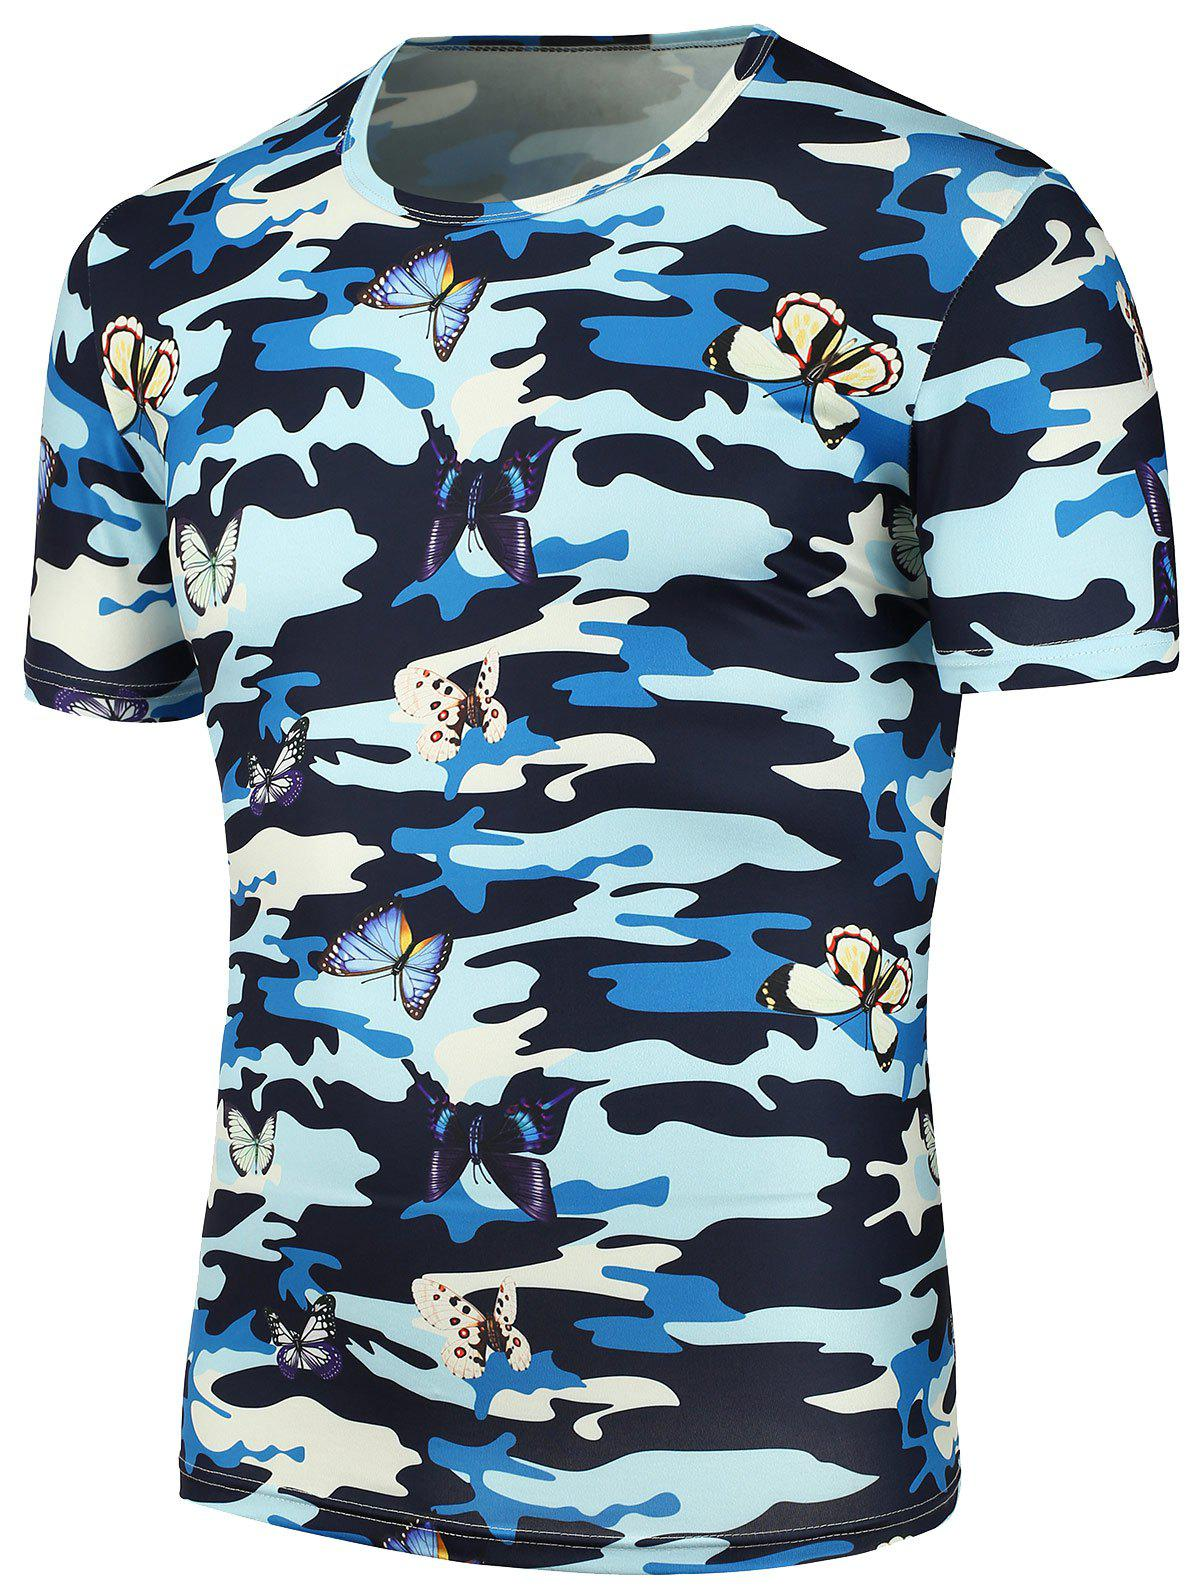 3D Butterfly Camouflage Print T-Shirt - CAMOUFLAGE XL